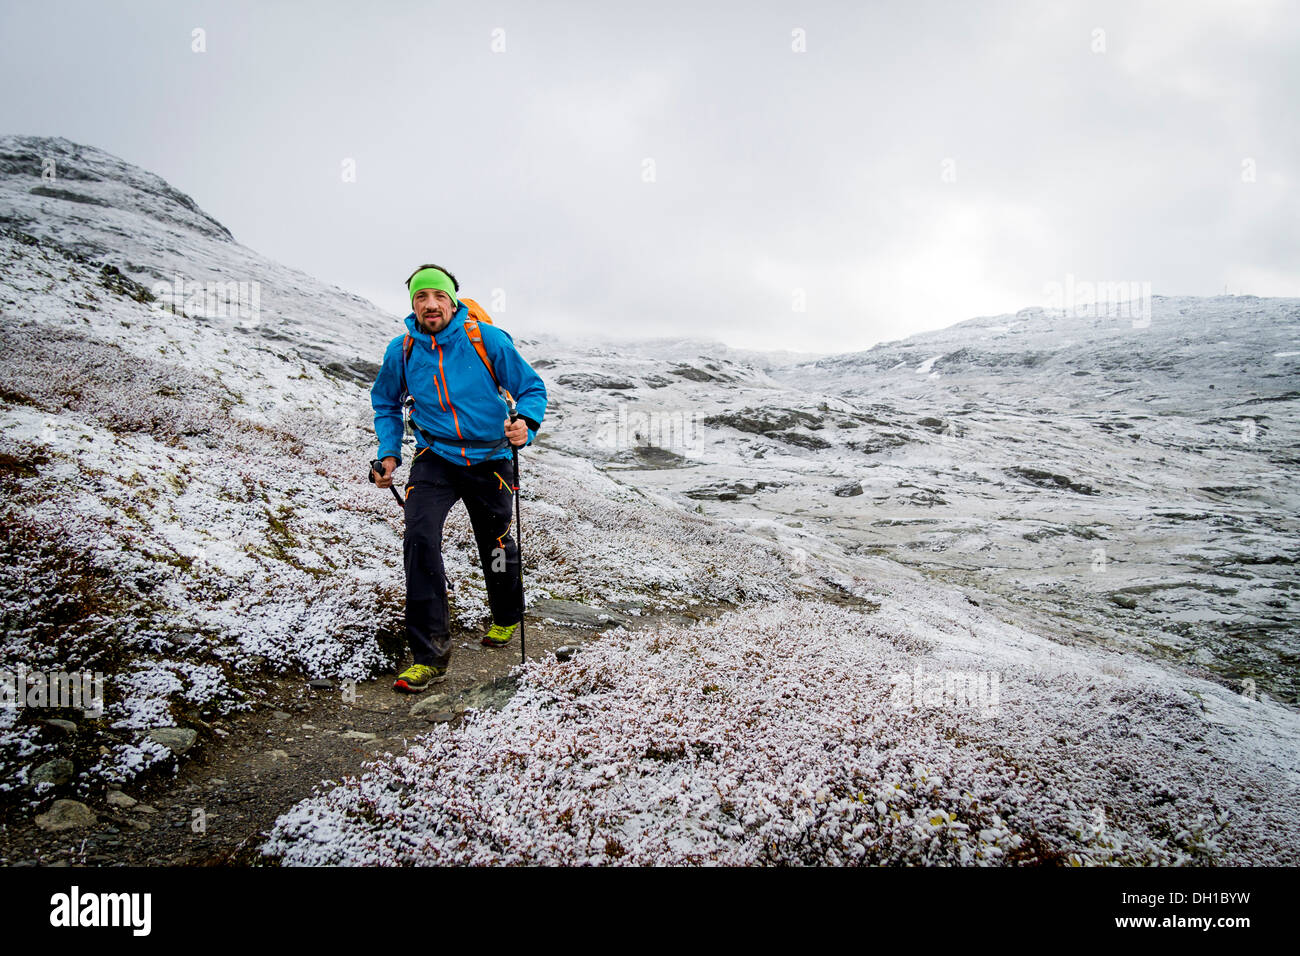 Man speed hiking along snowcapped trail, Norway, Europe - Stock Image